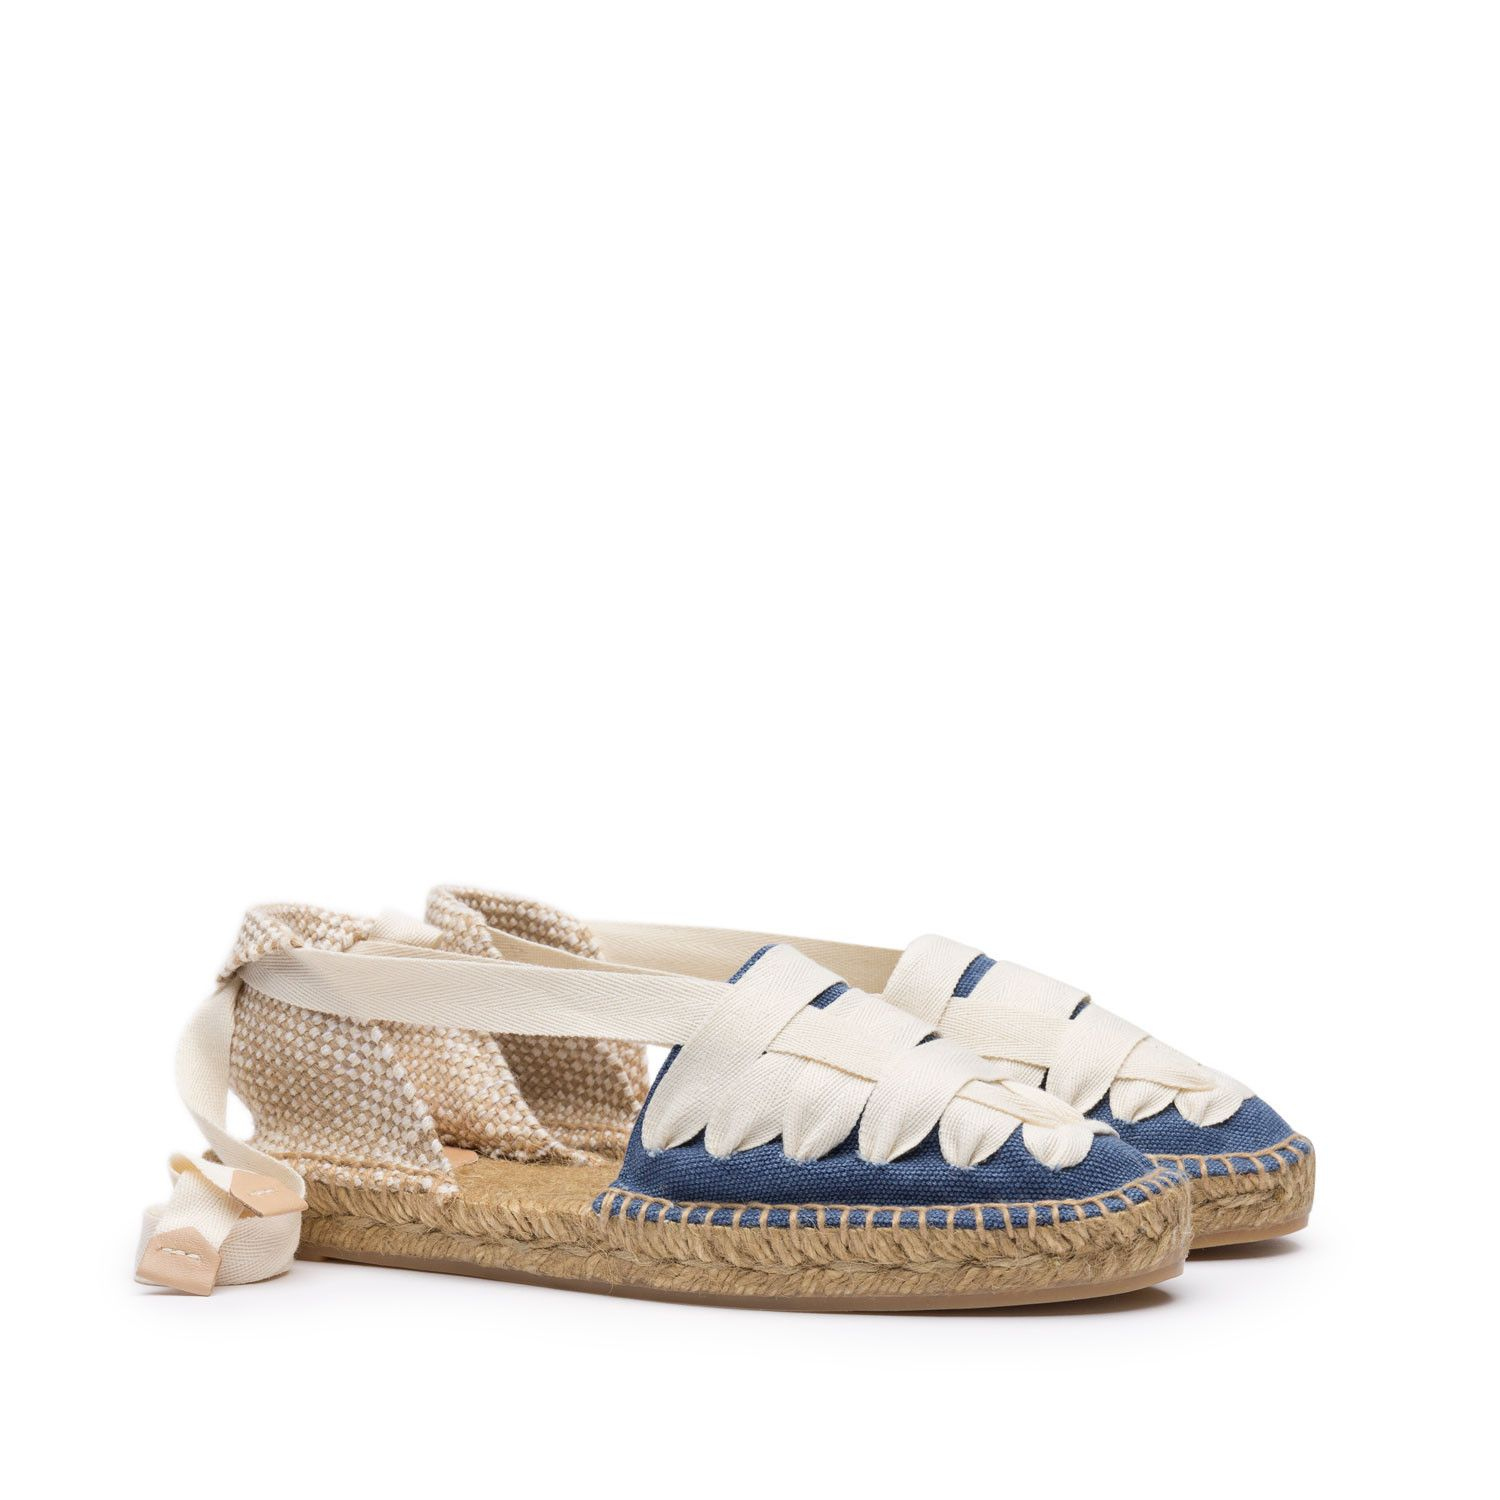 Why The Espadrille Is The Must-Have Summer Shoe